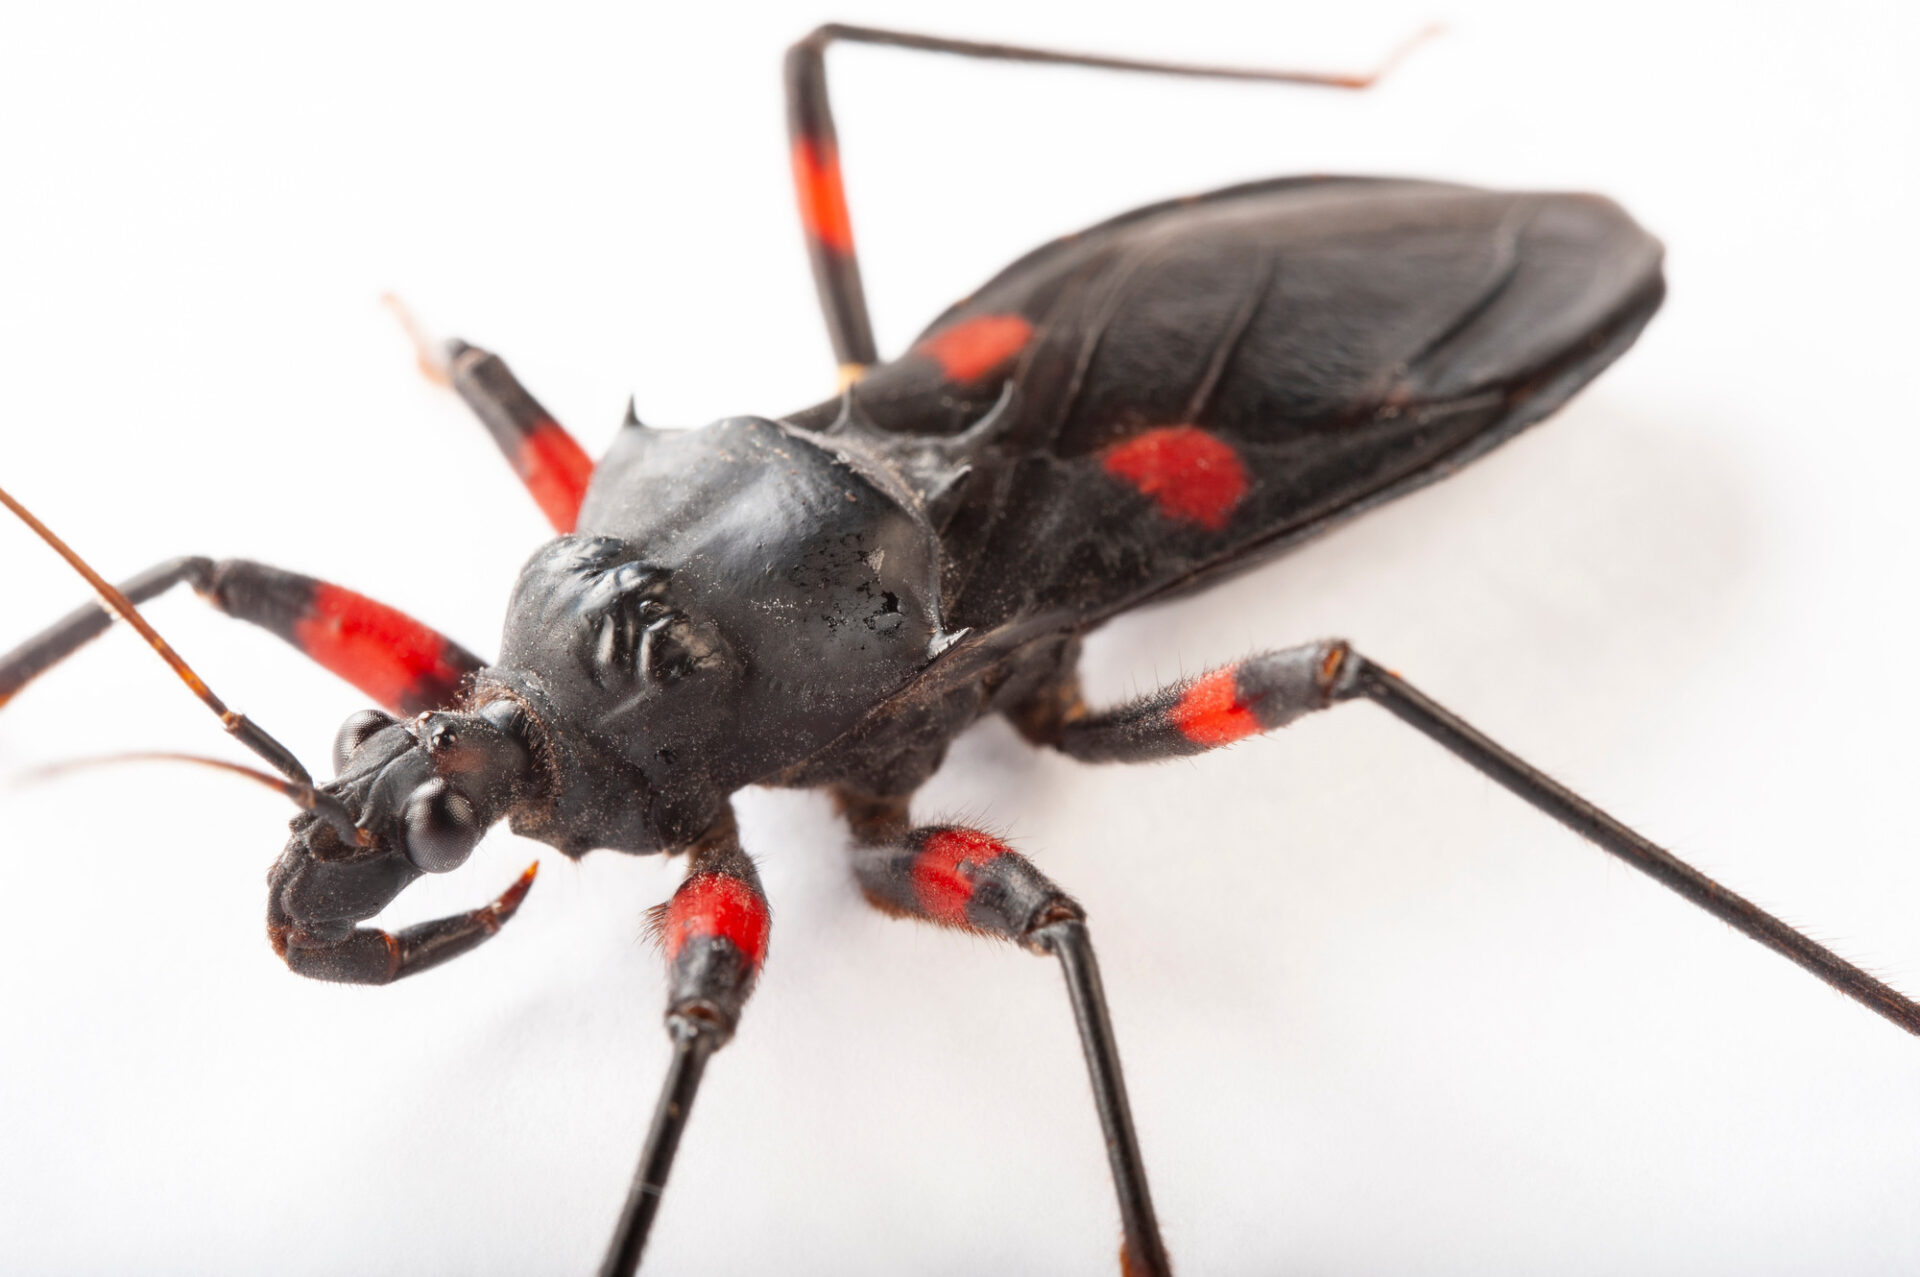 Photo: Red-spotted assassin bug (Platymeris rhadamanthus) at the Insectarium in New Orleans.